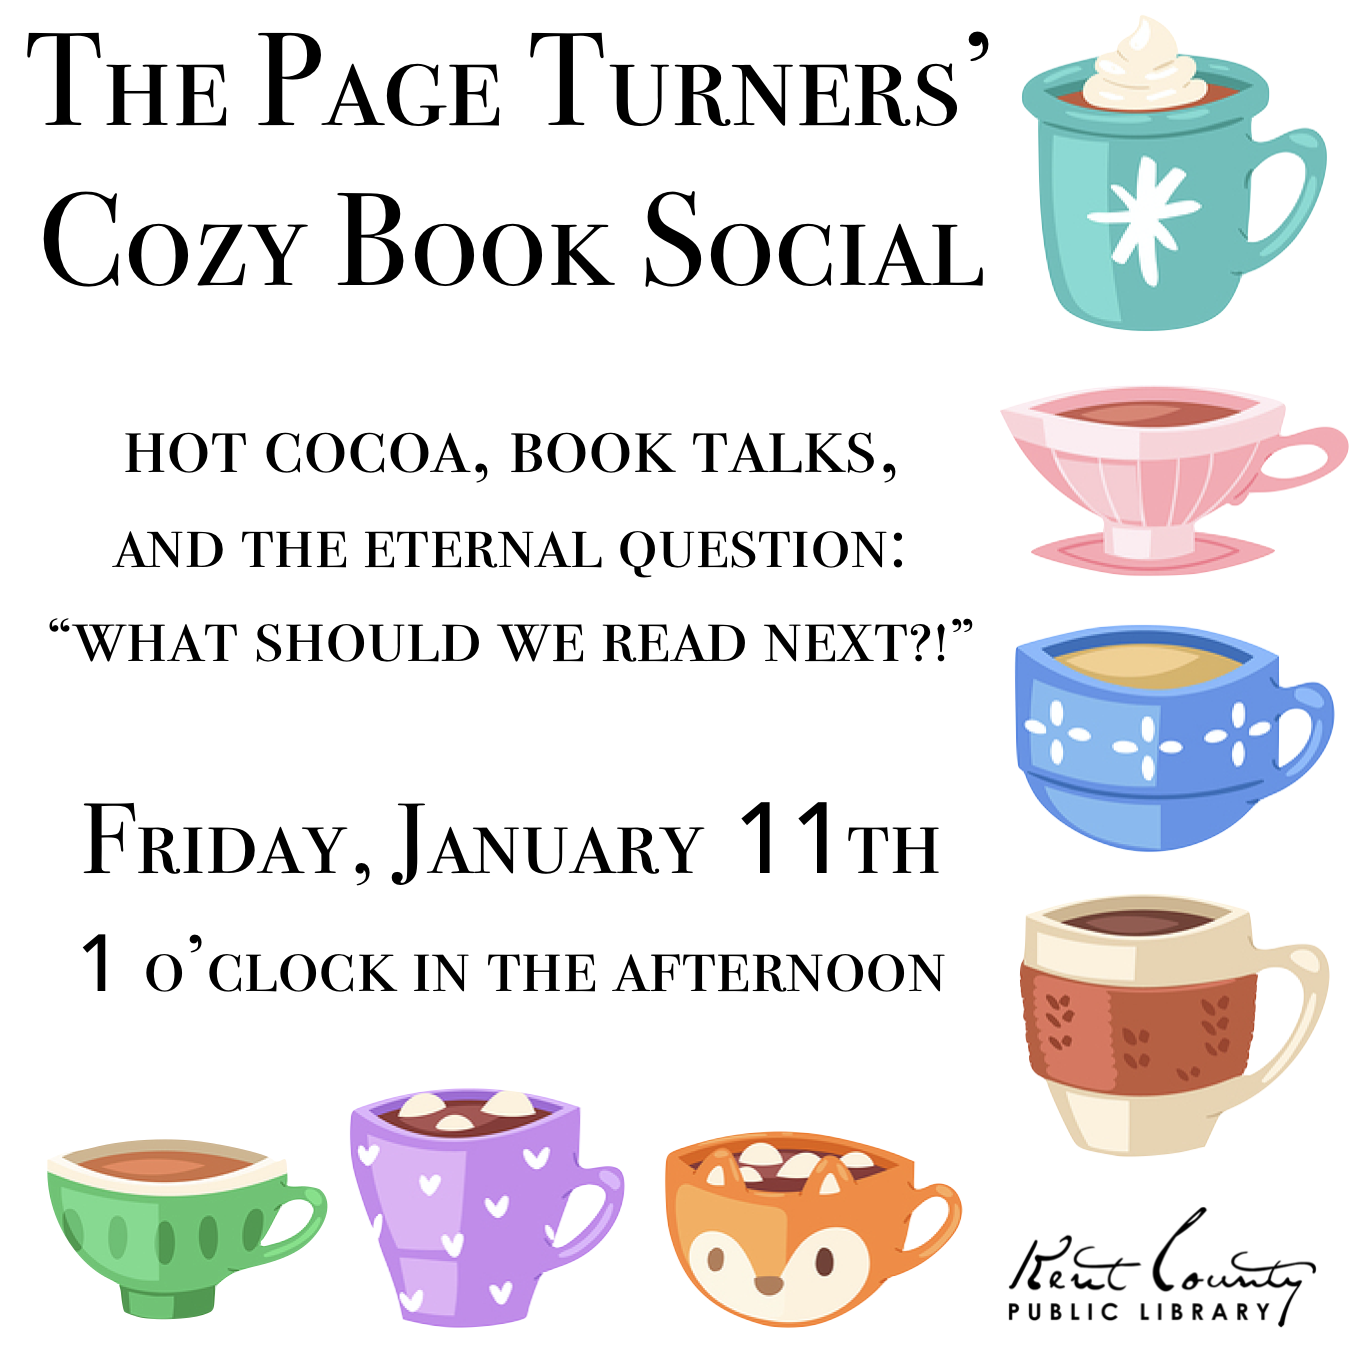 Cozy Book Social Hosted by The Page Turners Book Group